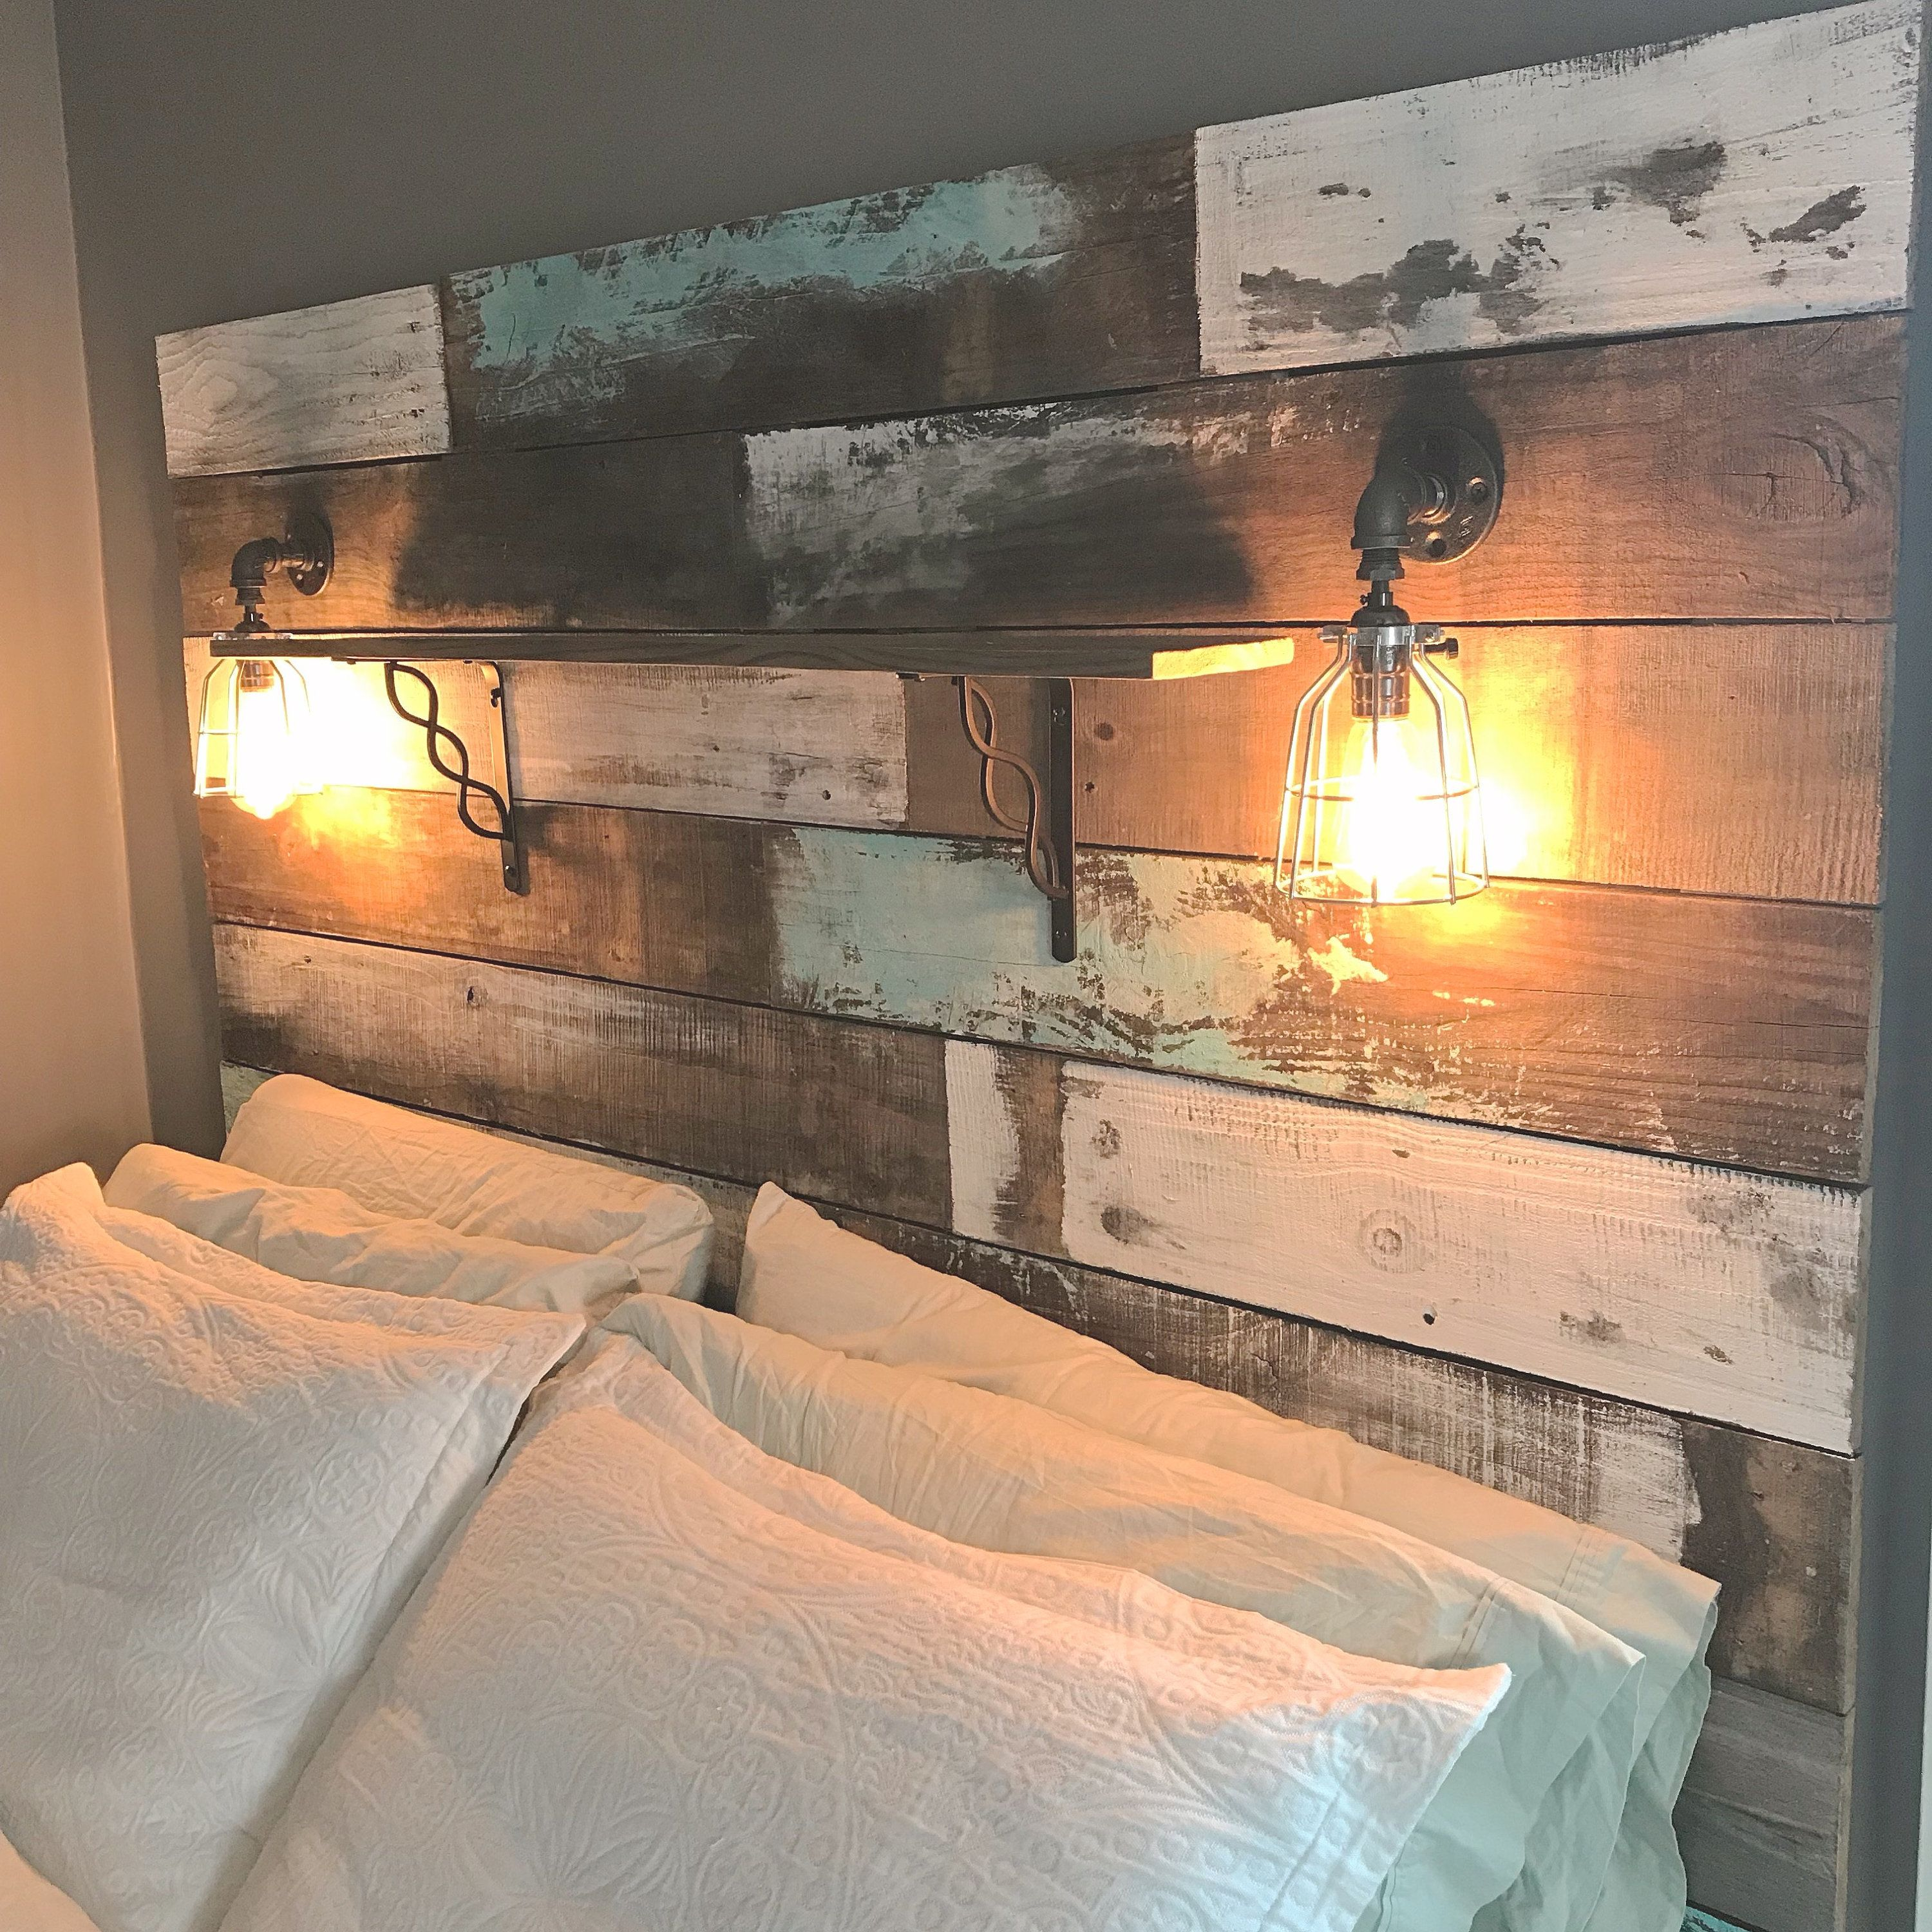 Farmhouse Rustic Chippy Paint Cottage Whitewashed Grey Blue Etsy Rustic Bedroom Design Rustic Bedroom Rustic Headboard Rustic bedroom ideas wood